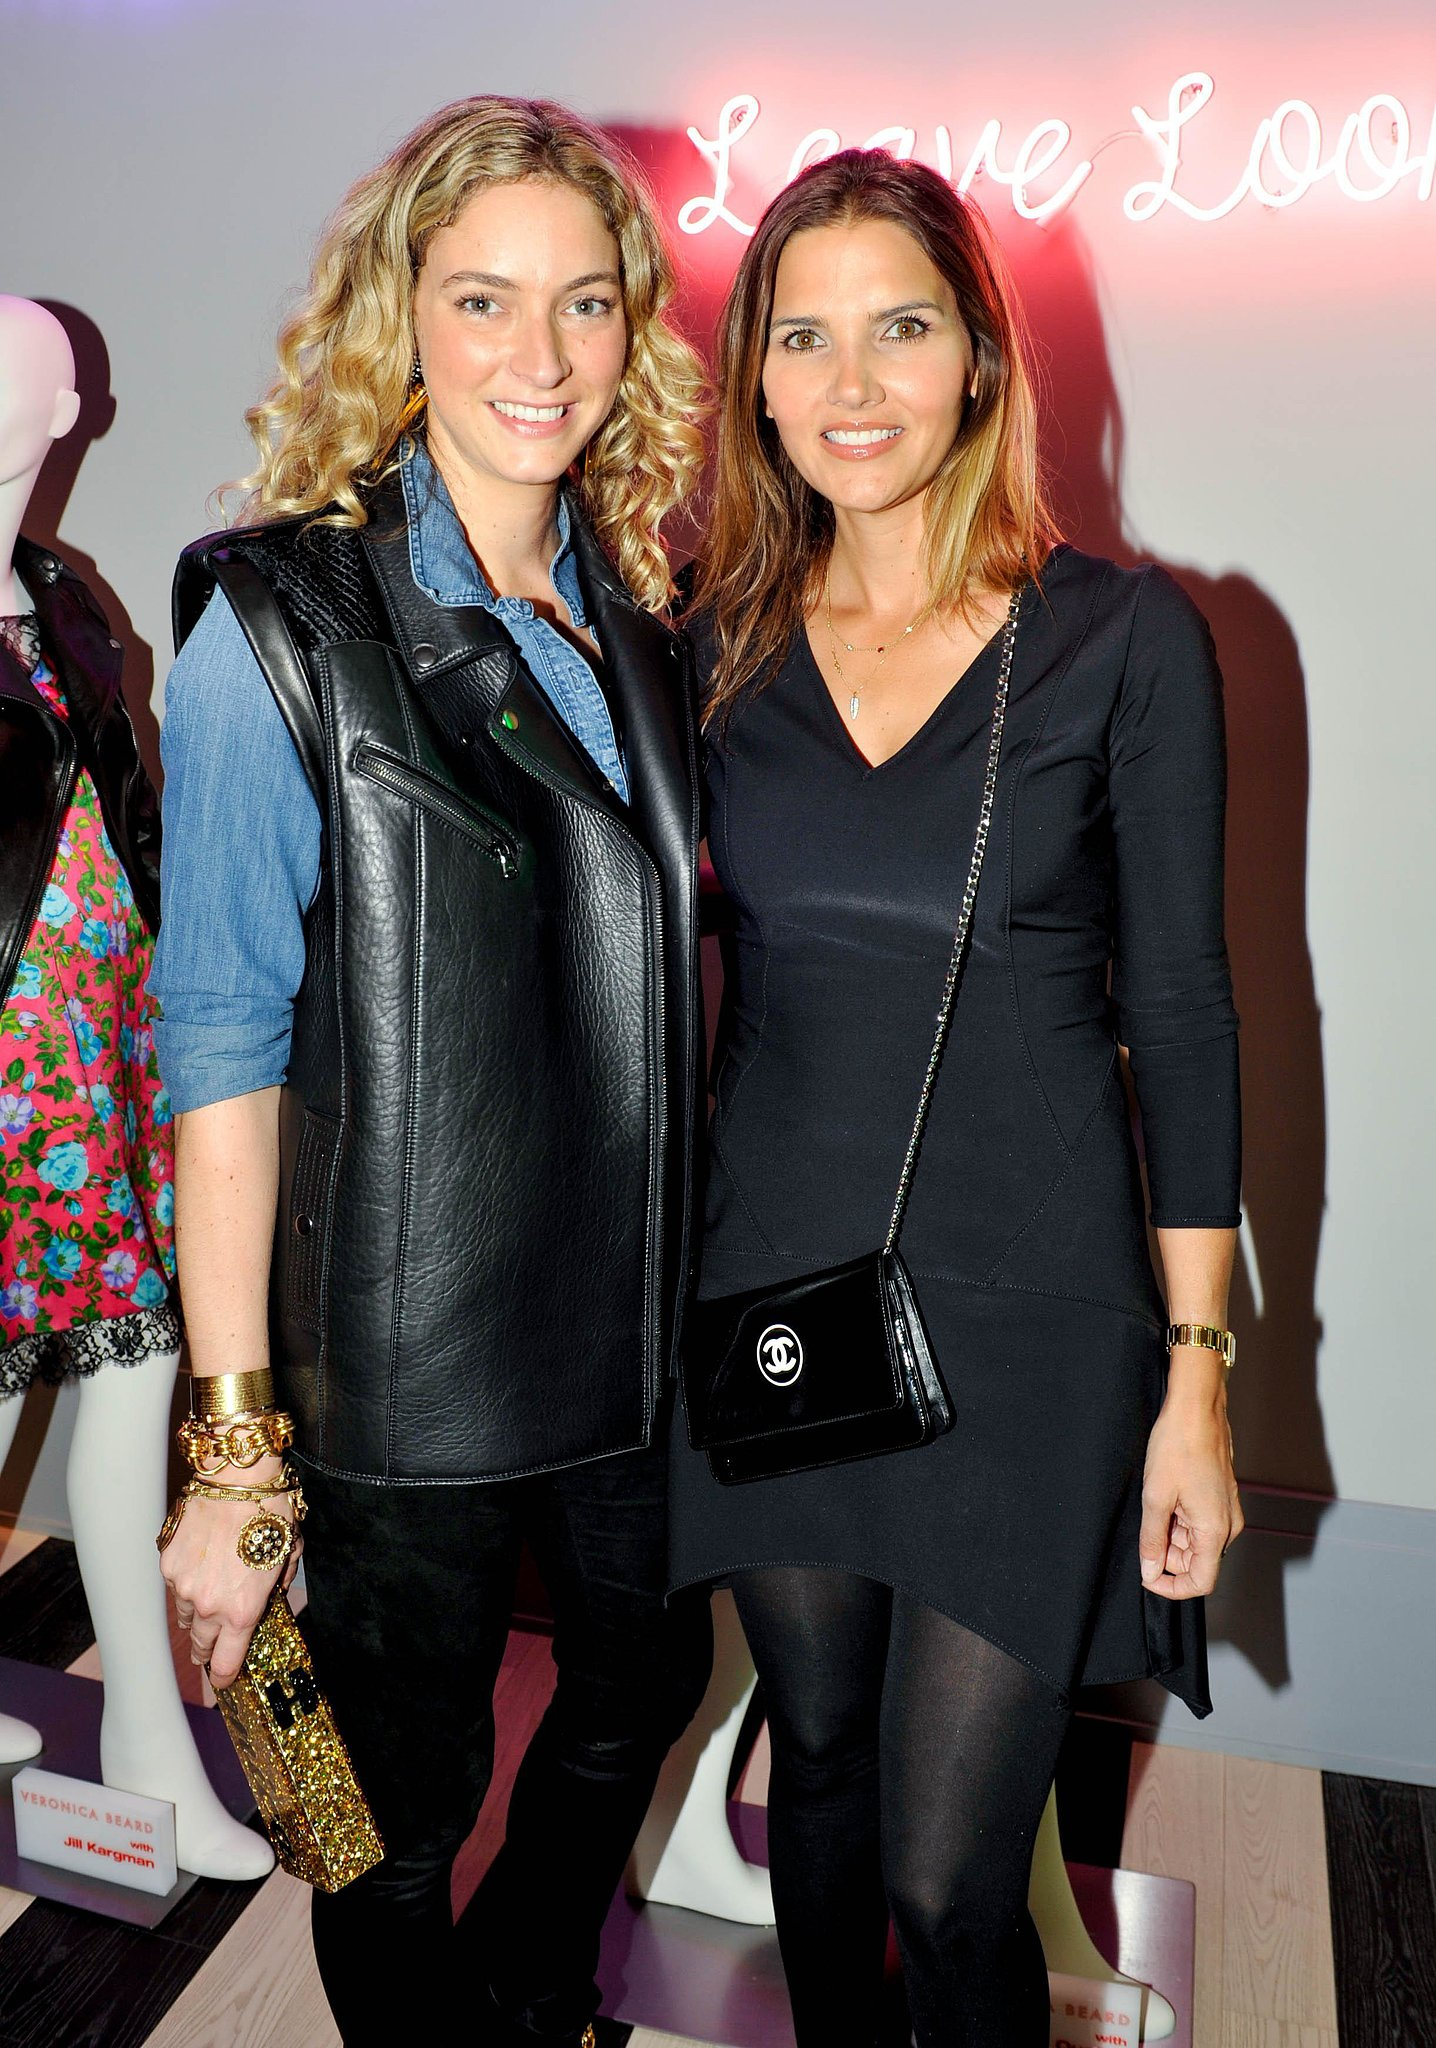 Veronica Beard's design duo joined Kirna Zabete to launch their limited edition jacket collection.